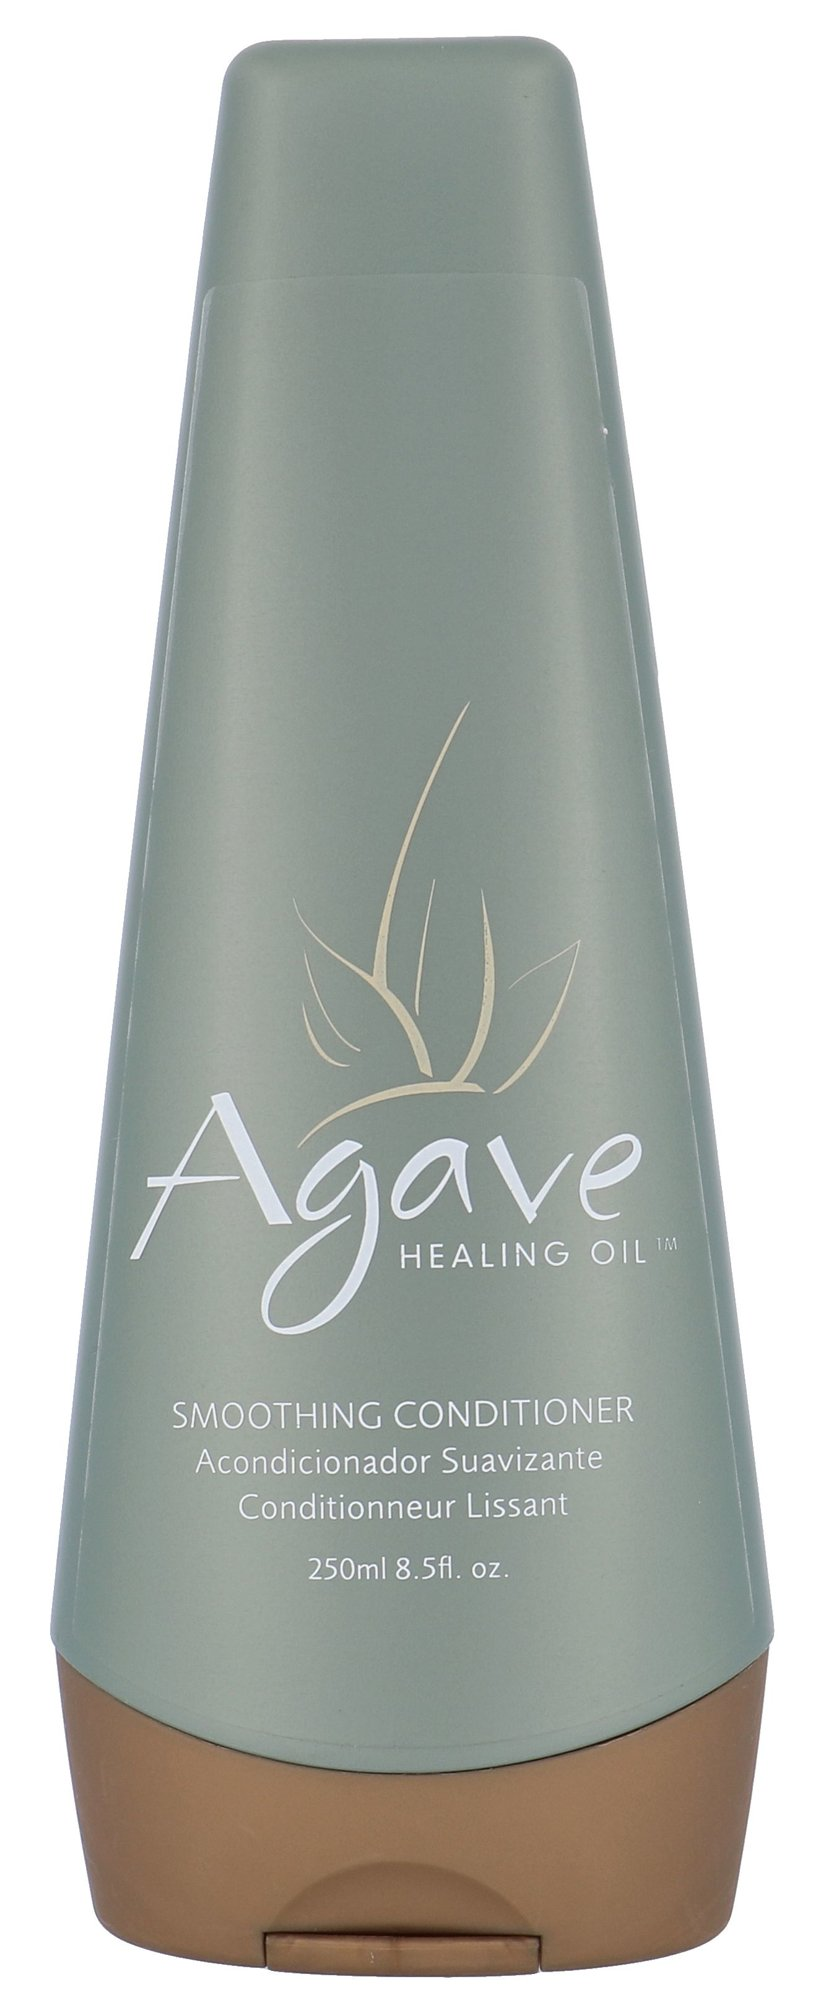 Bio Ionic Agave Oil Treatment Cosmetic 250ml  Smoothing Conditioner